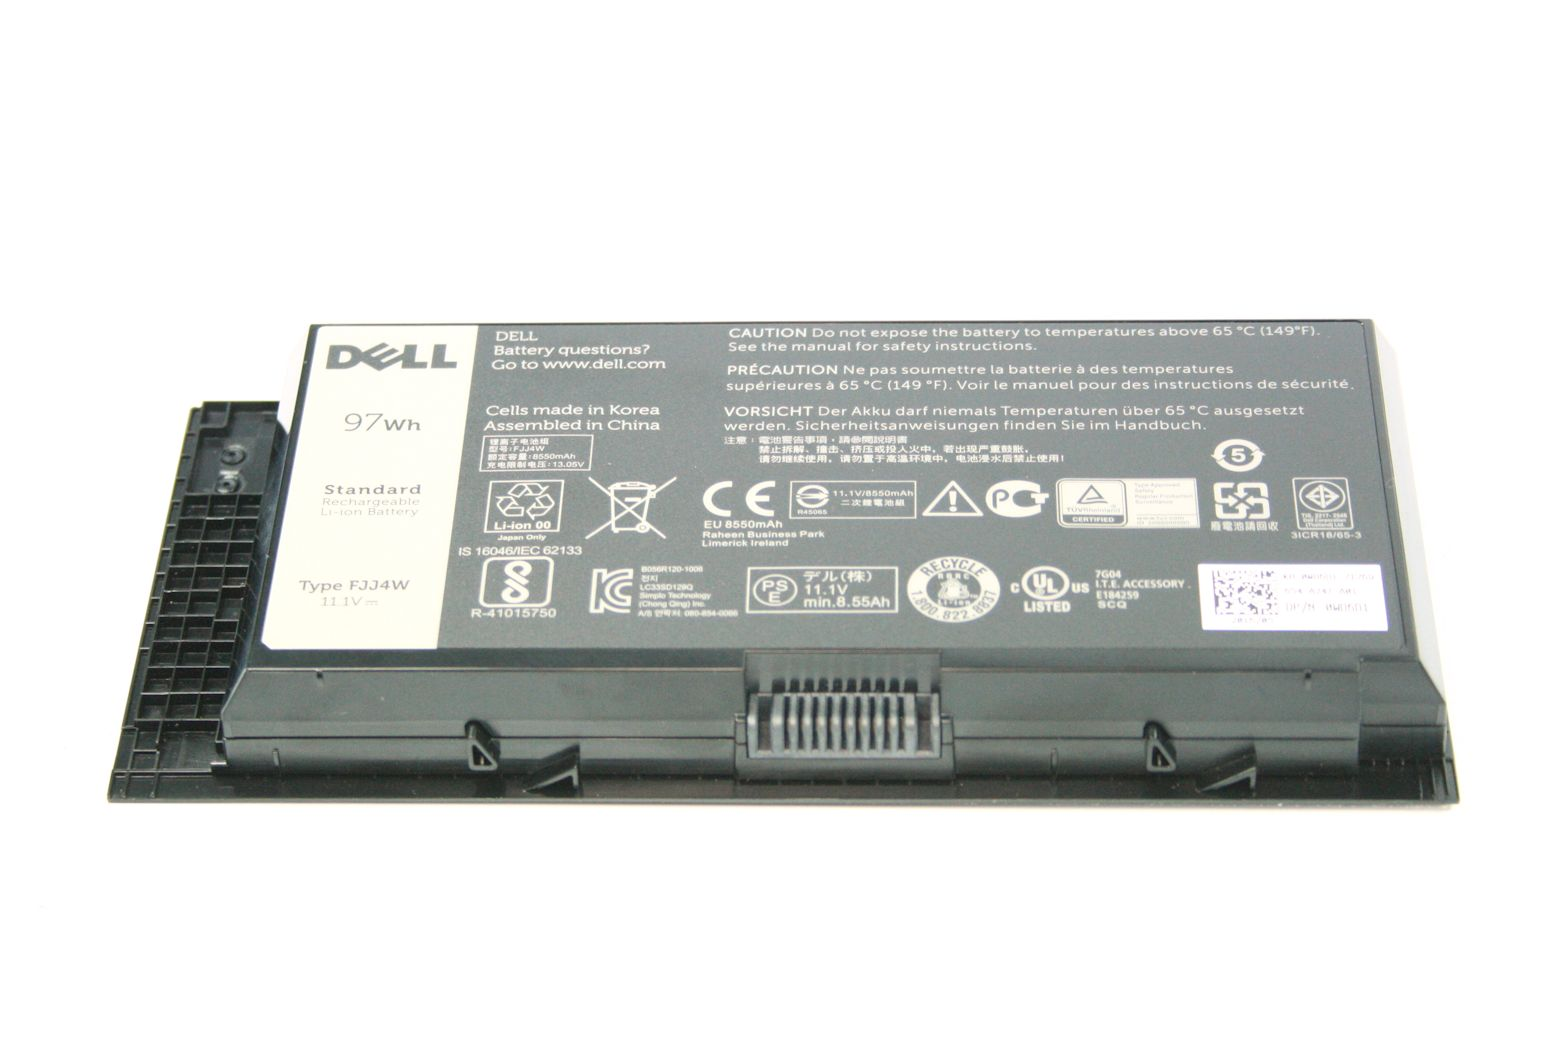 Original DELL Precision M4600 M6600 M6700 LI ION 9 Zellen Akku Battery HPNYM